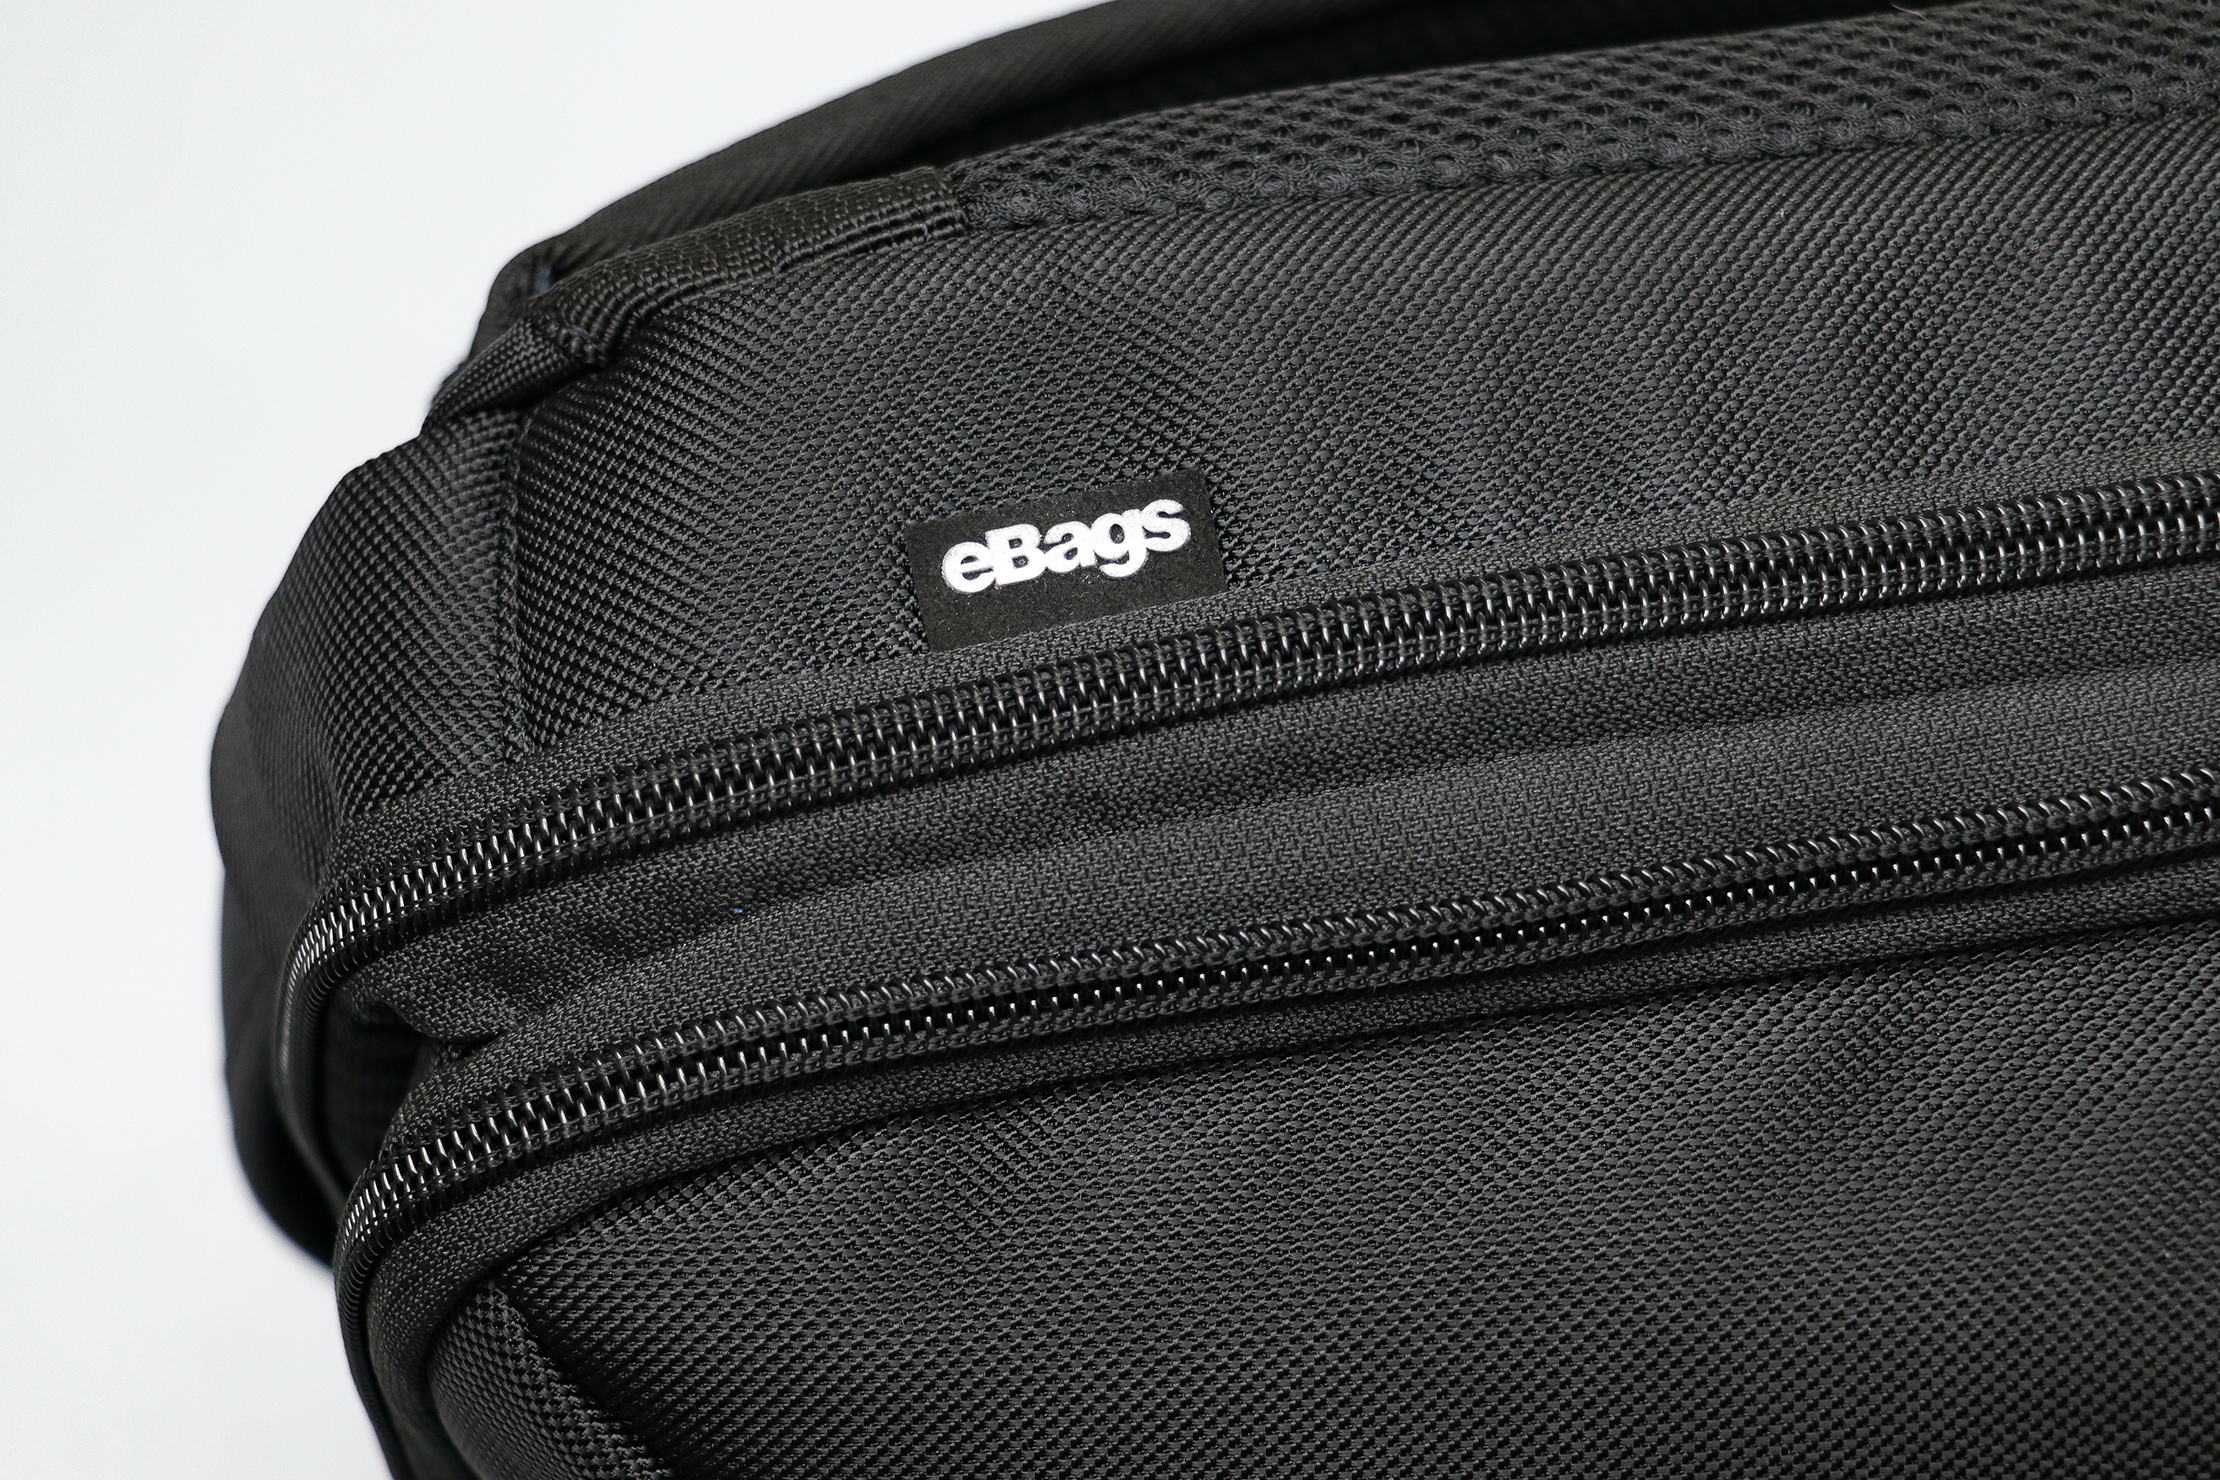 eBags Pro Slim Laptop Backpack Material and Logo